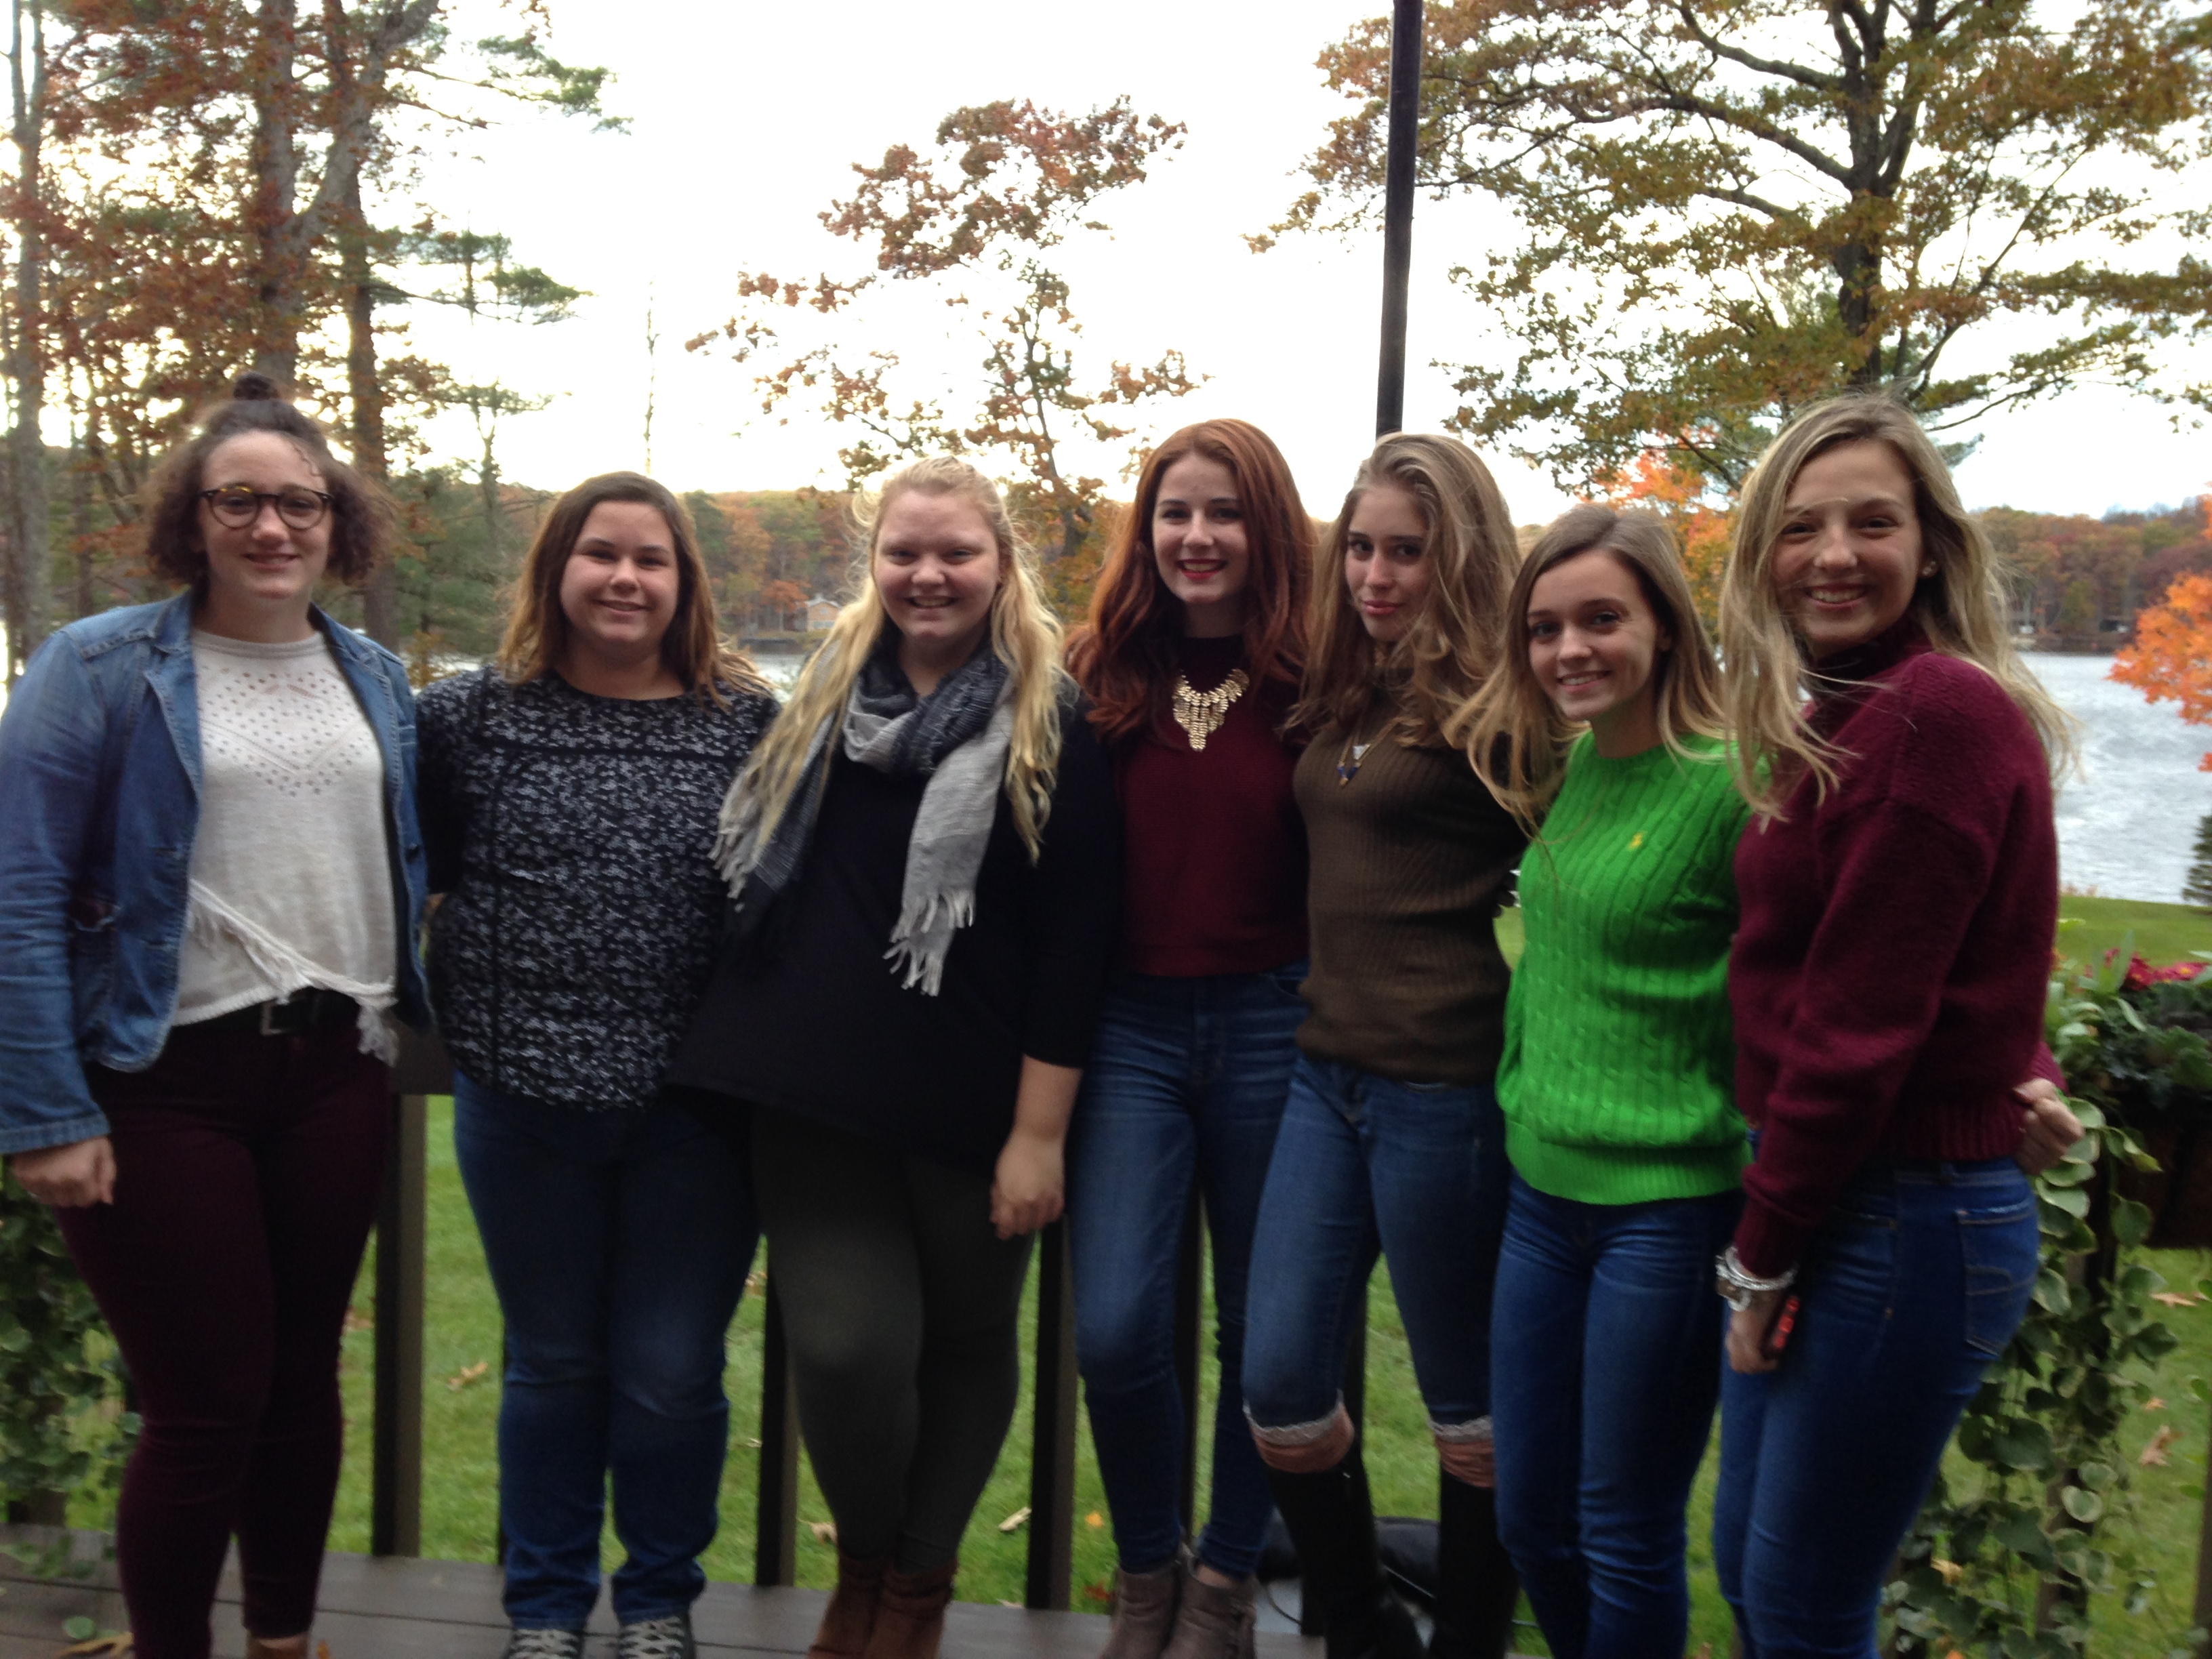 Western Wayne FBLA Members Attend FBLA RLW at Woodloch